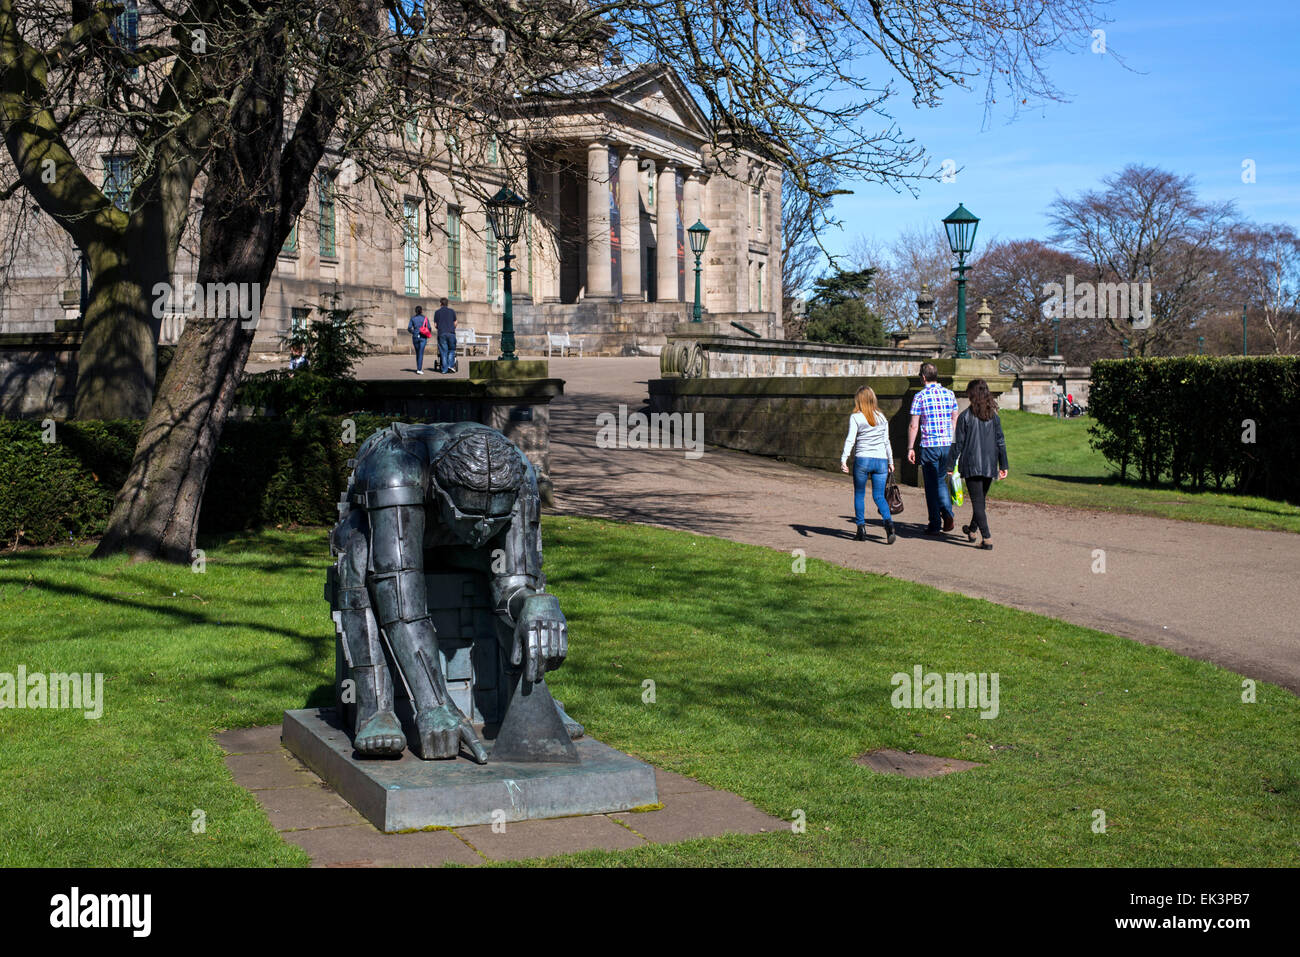 Visitors walking by the figure of Sir Isaac Newton by Sir Eduardo Paolozzi at the entrance to the Gallery of Modern - Stock Image